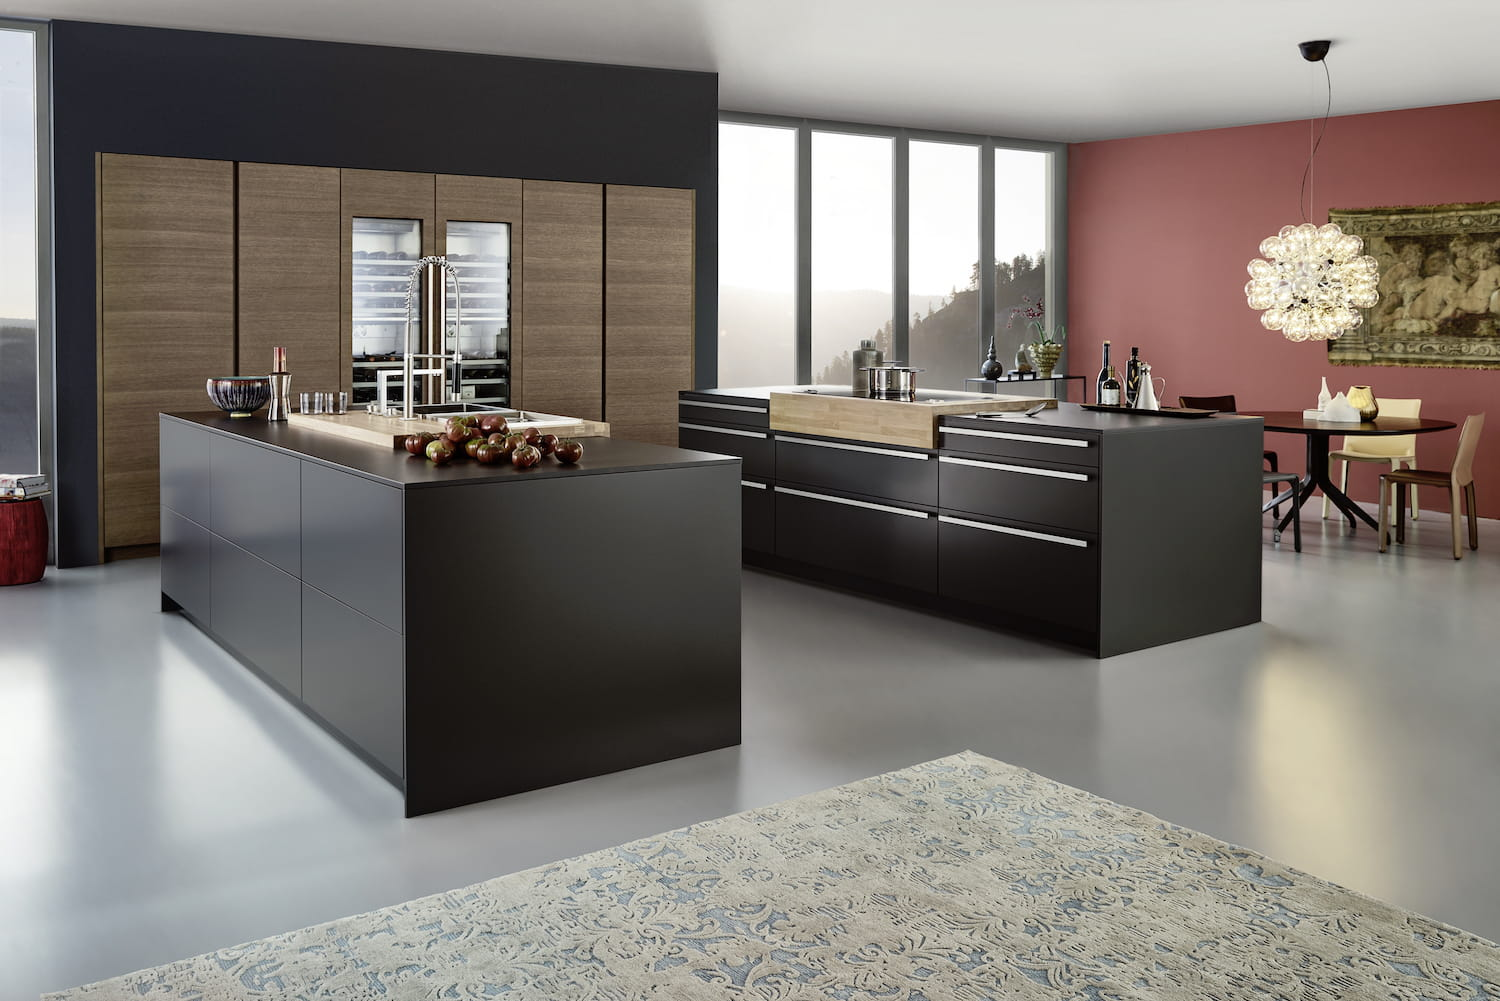 cuisine noir bois inox. Black Bedroom Furniture Sets. Home Design Ideas